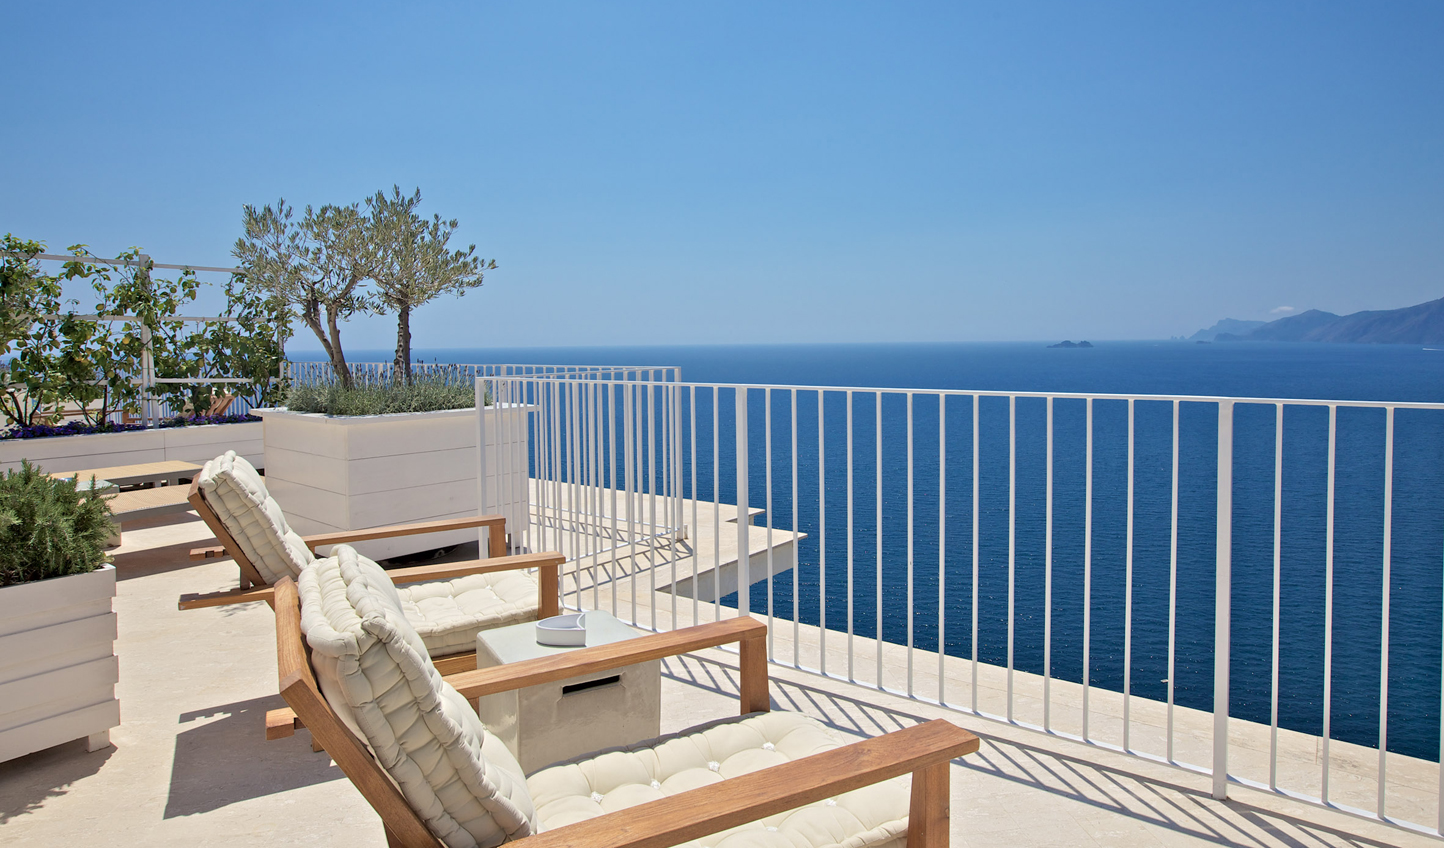 Enjoy some of the best views of the Amalfi Coast from Casa Angelina